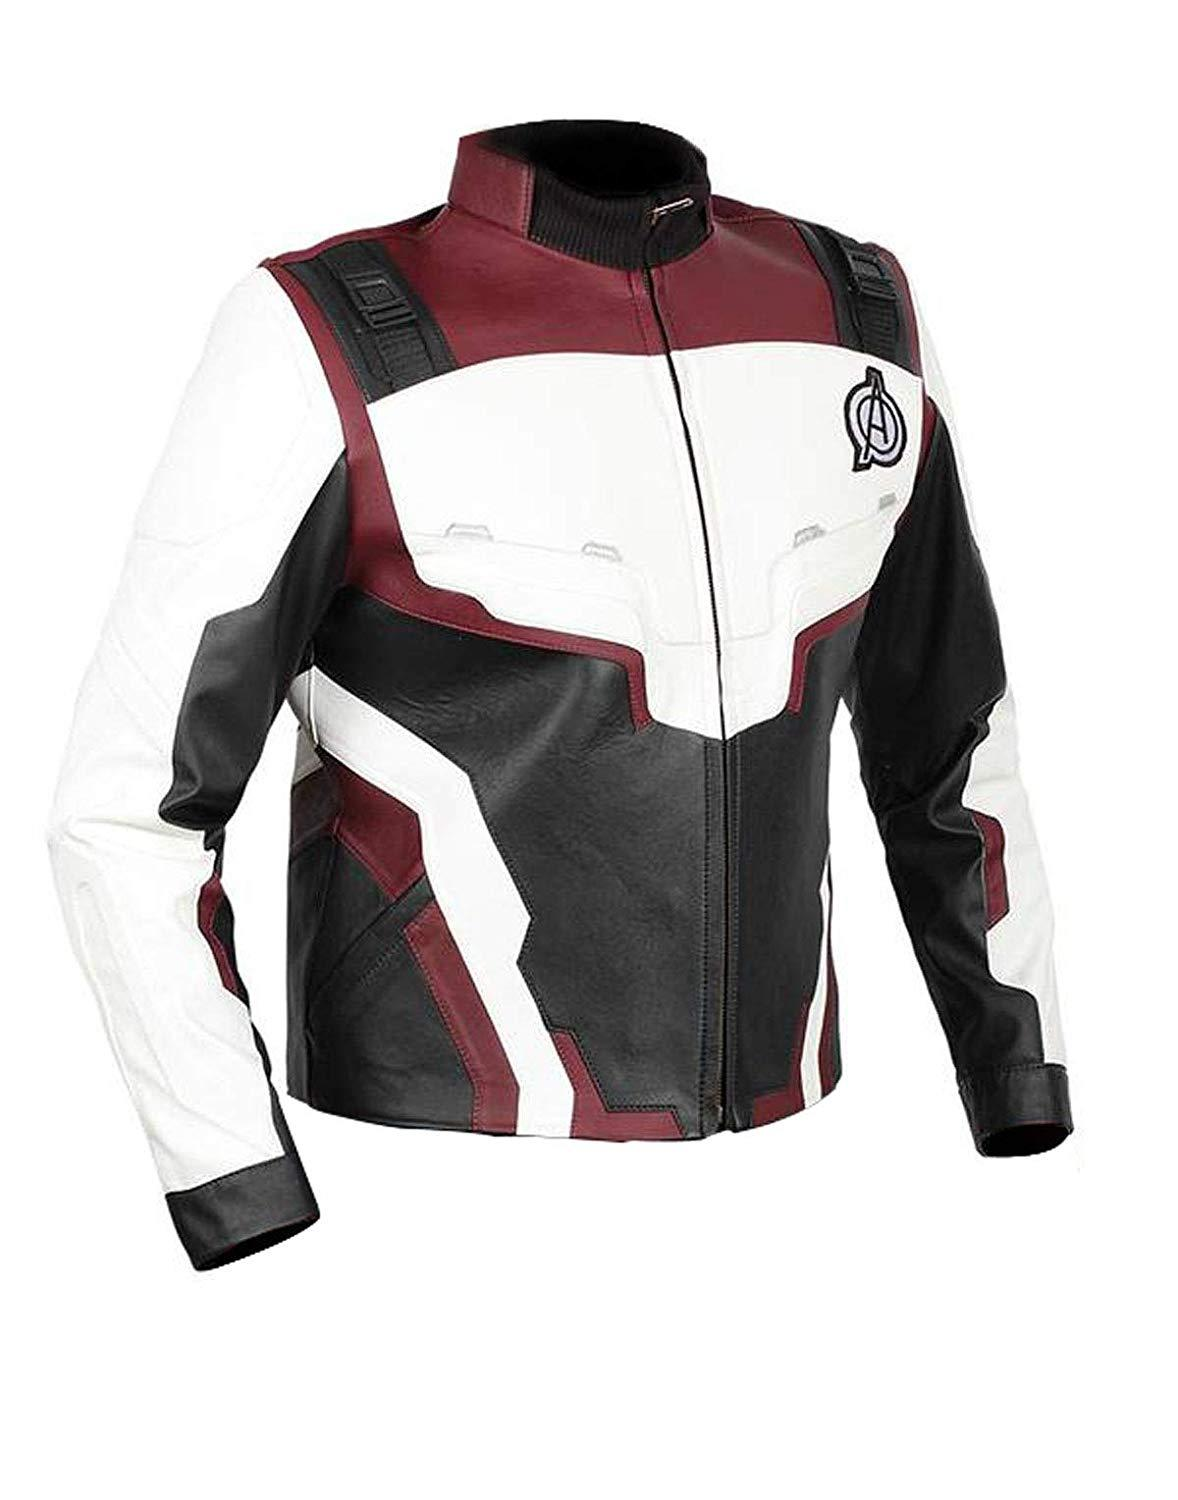 avenger-endgame-quantum-realm-leather-jacket-style-b2